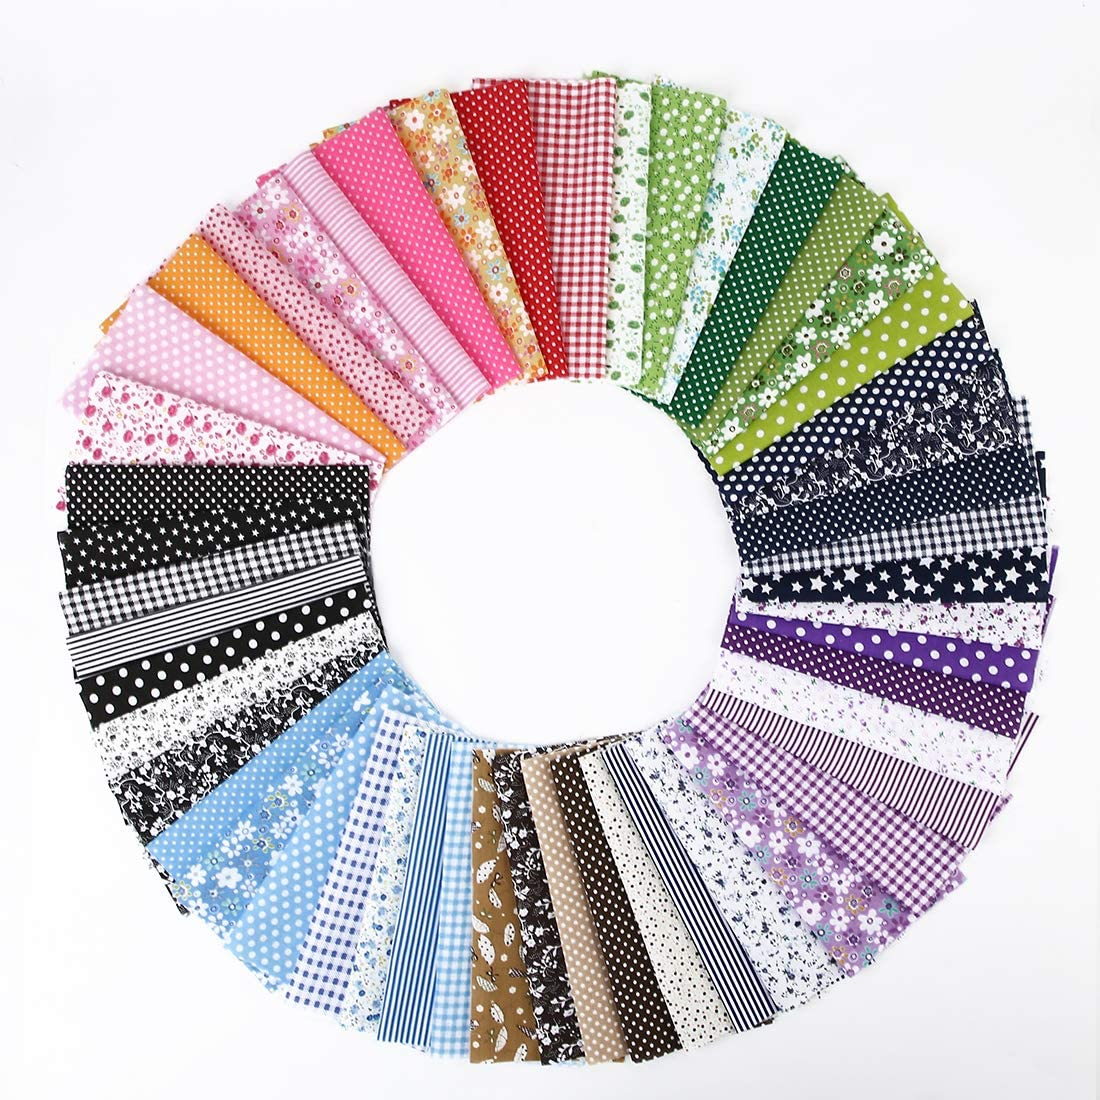 "PLAZALA 50PCS Cotton Craft Fabric Bundle Squares Patchwork DIY Sewing Scrapbooking Quilting 8""x 8"""